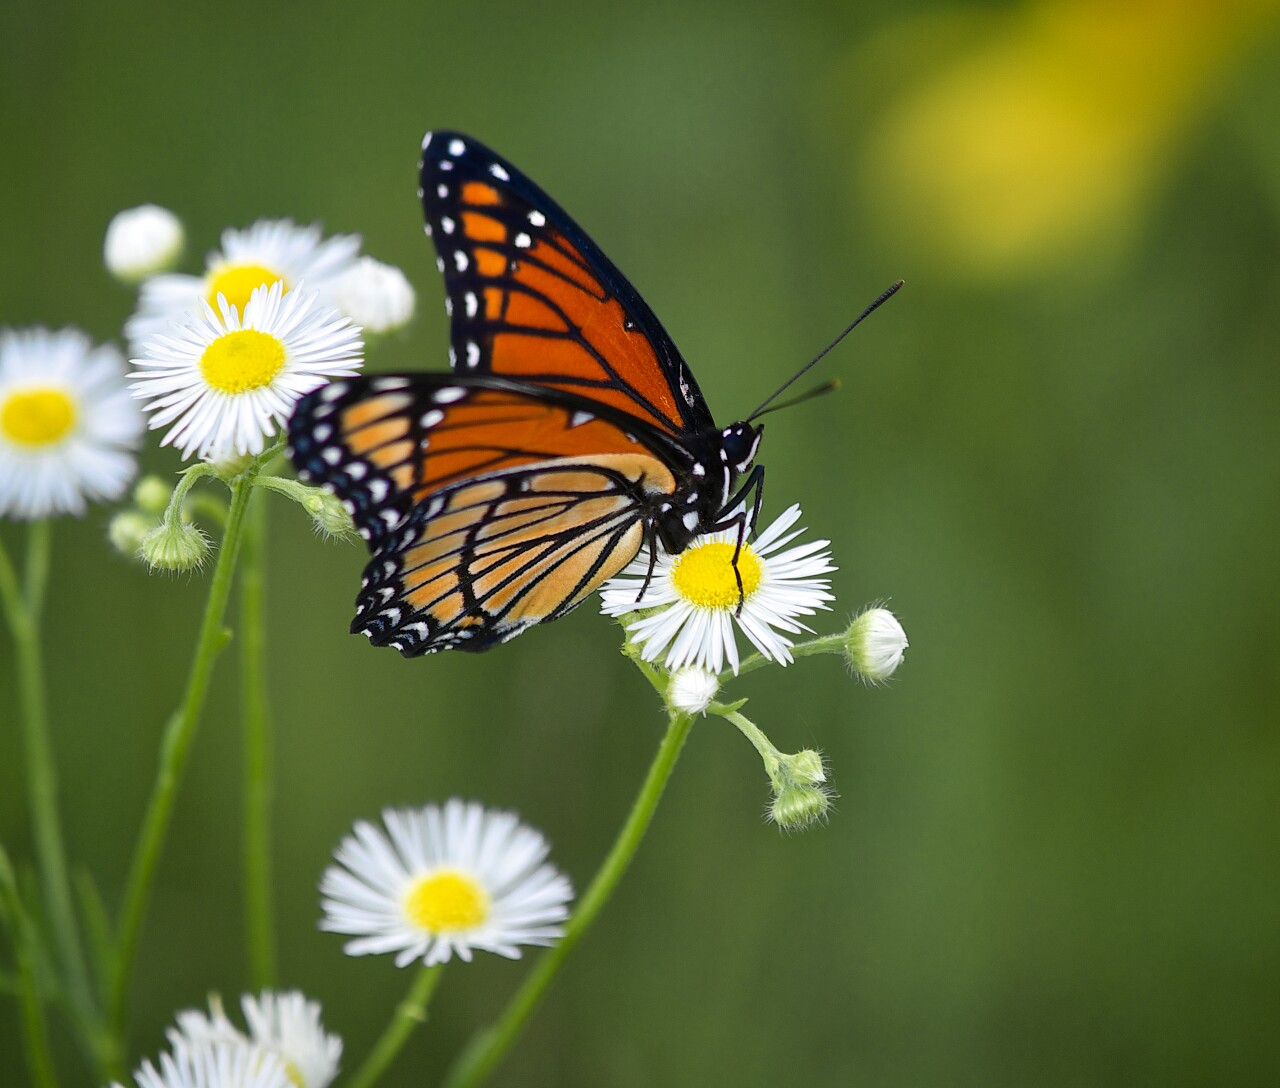 A close look at a monarch buttefly